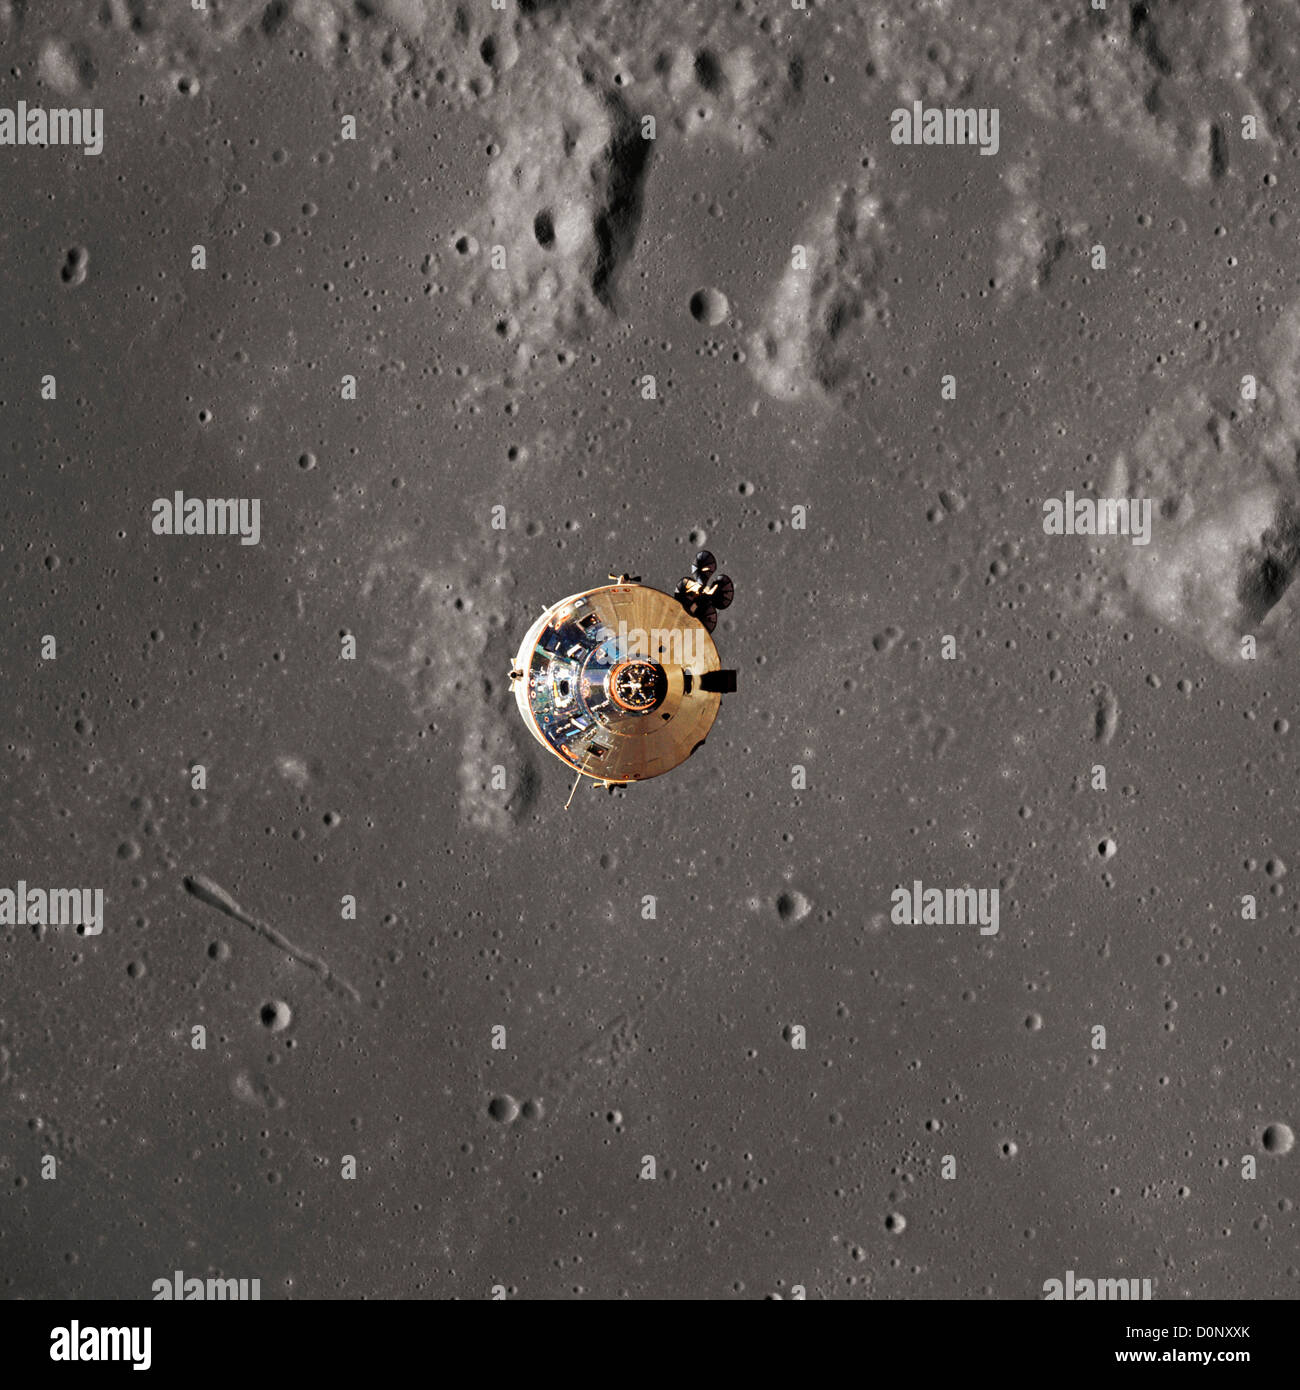 Apollo 11 - The Command Module Framed by the Moon Stock Photo